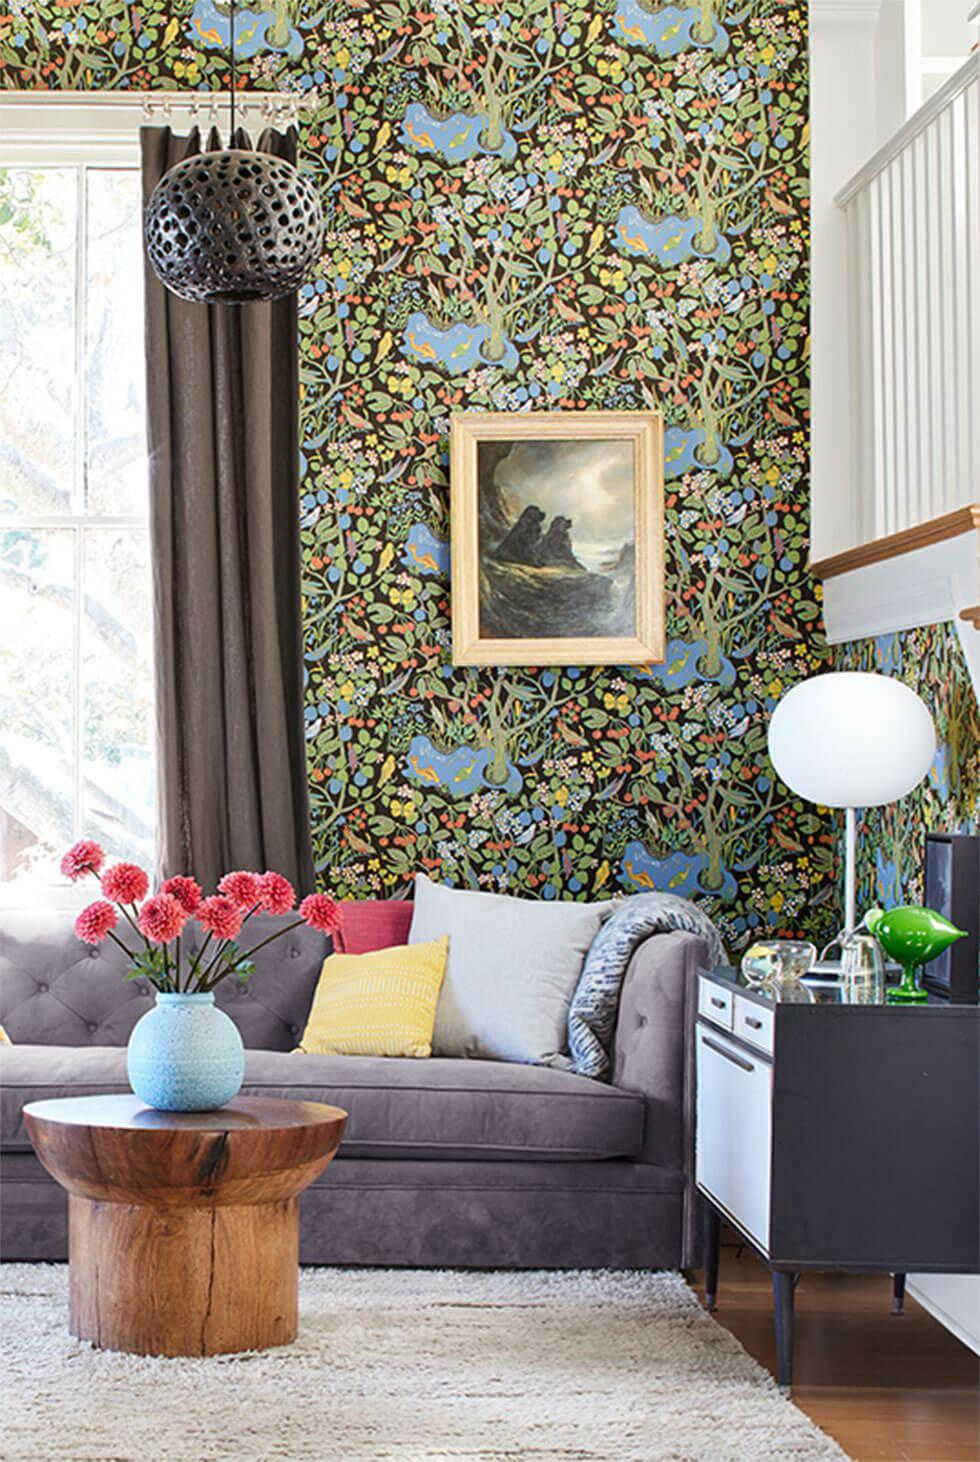 Living room with lush floral wallpaper